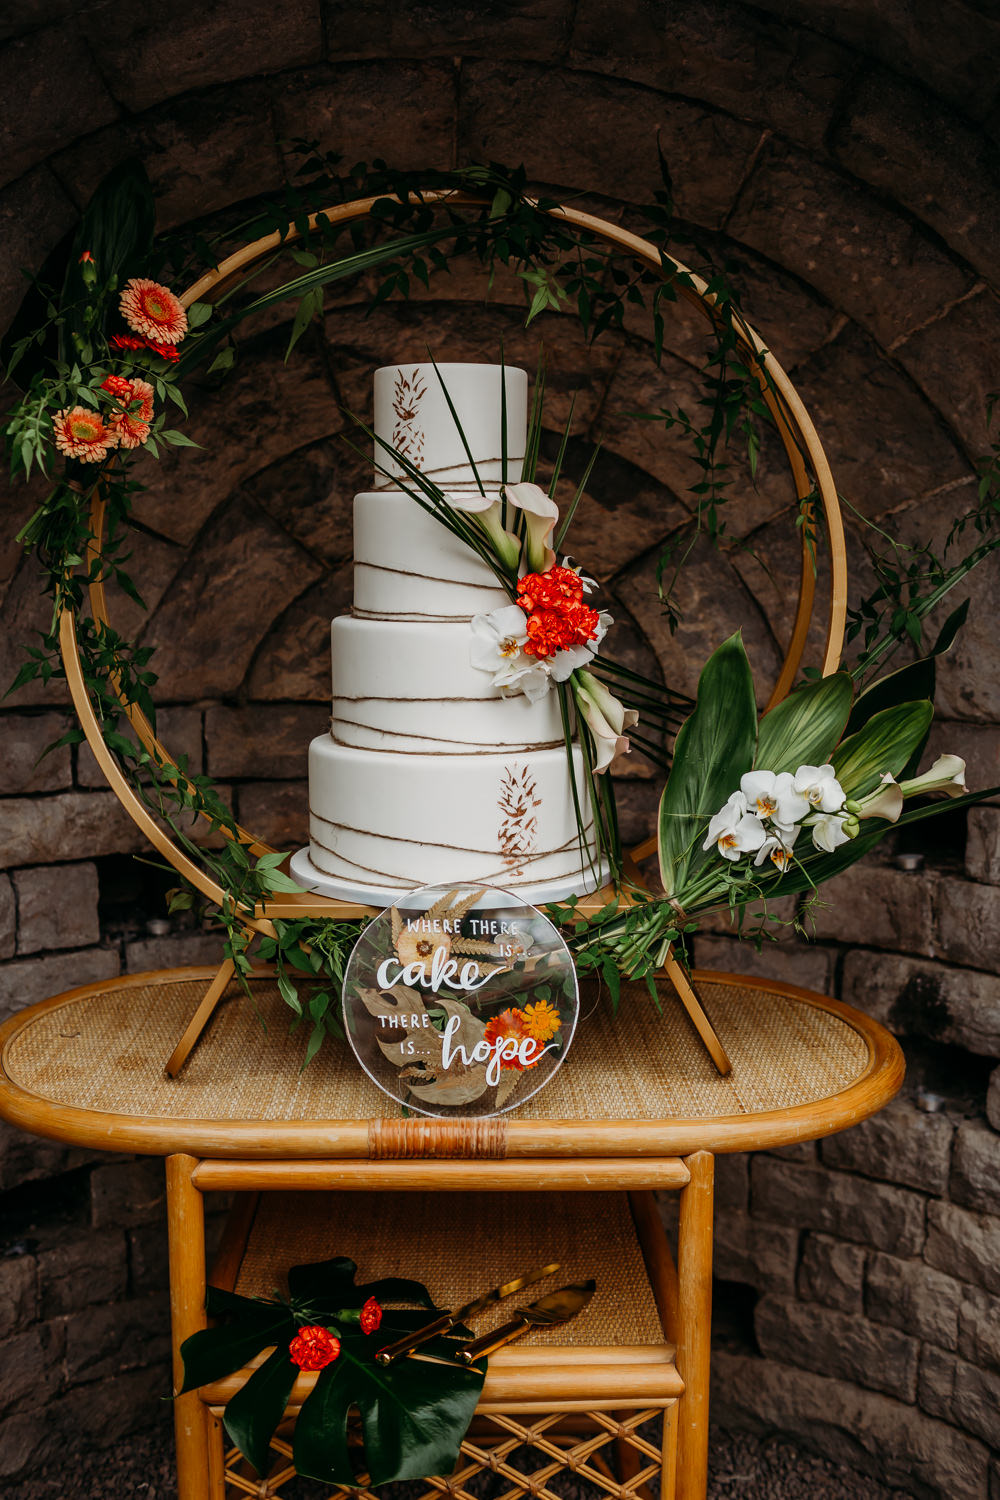 Leaves Twine Pineapples Cake Table Hoop Greenery Moon Gate Foliage Tropical Wedding Ideas When Charlie Met Hannah